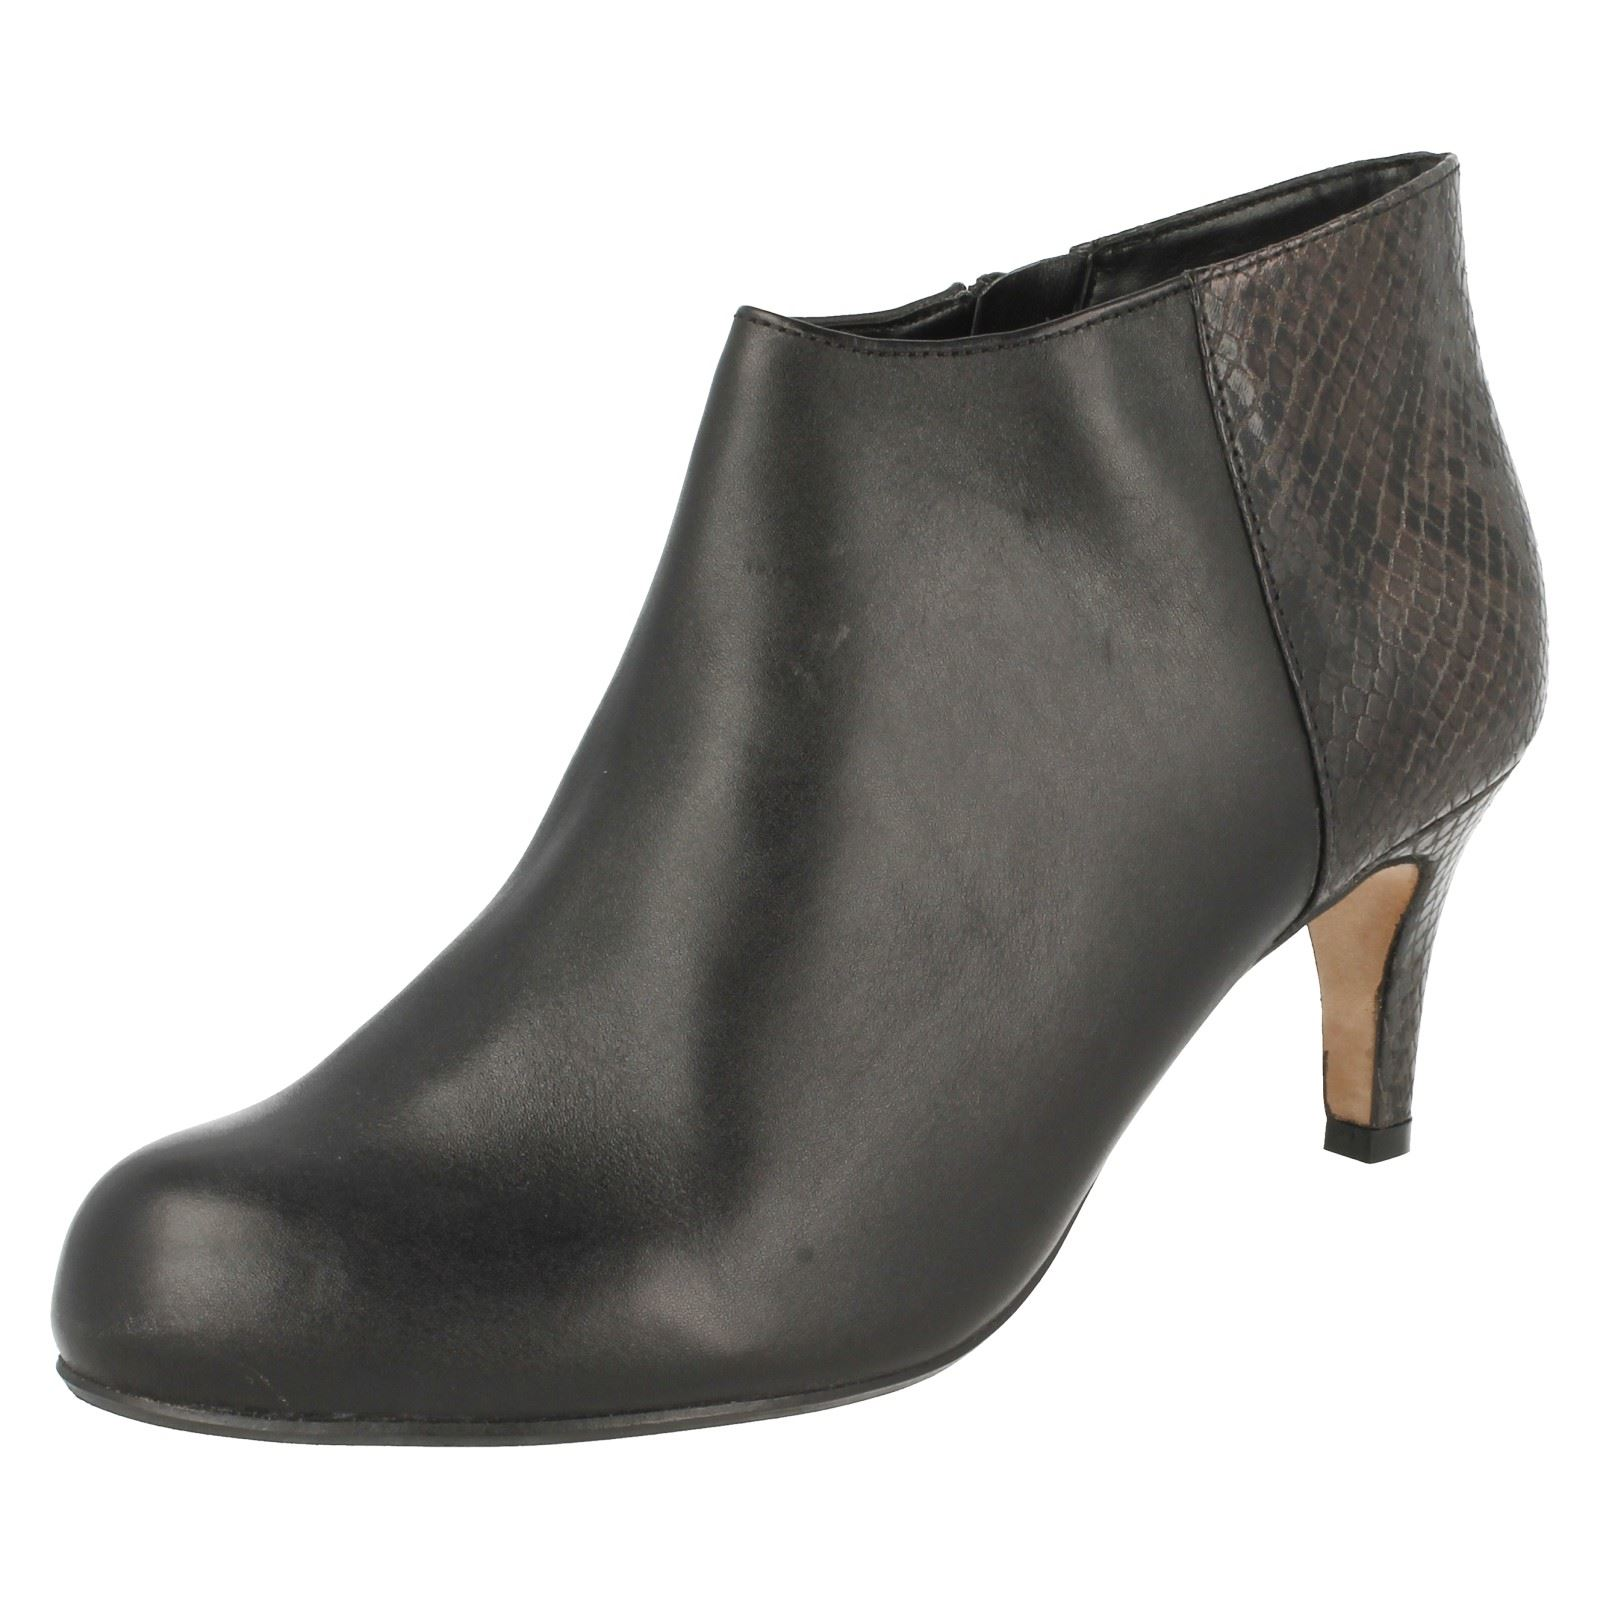 'Ladies Clarks' Smart Ankle Boots - Arista Flirt